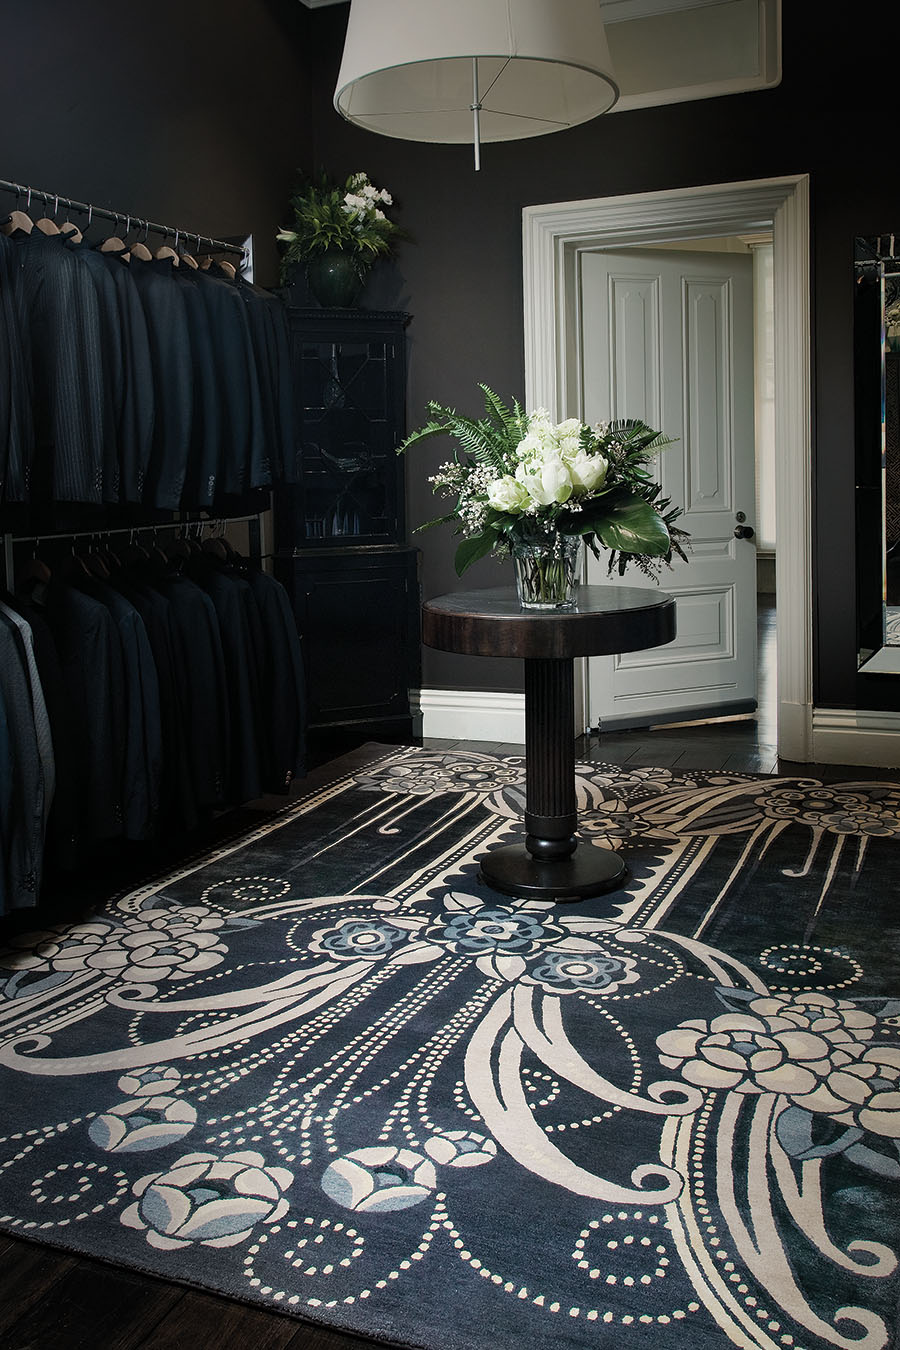 location wardrobe shot of black pearl rug by catherine martin art deco style